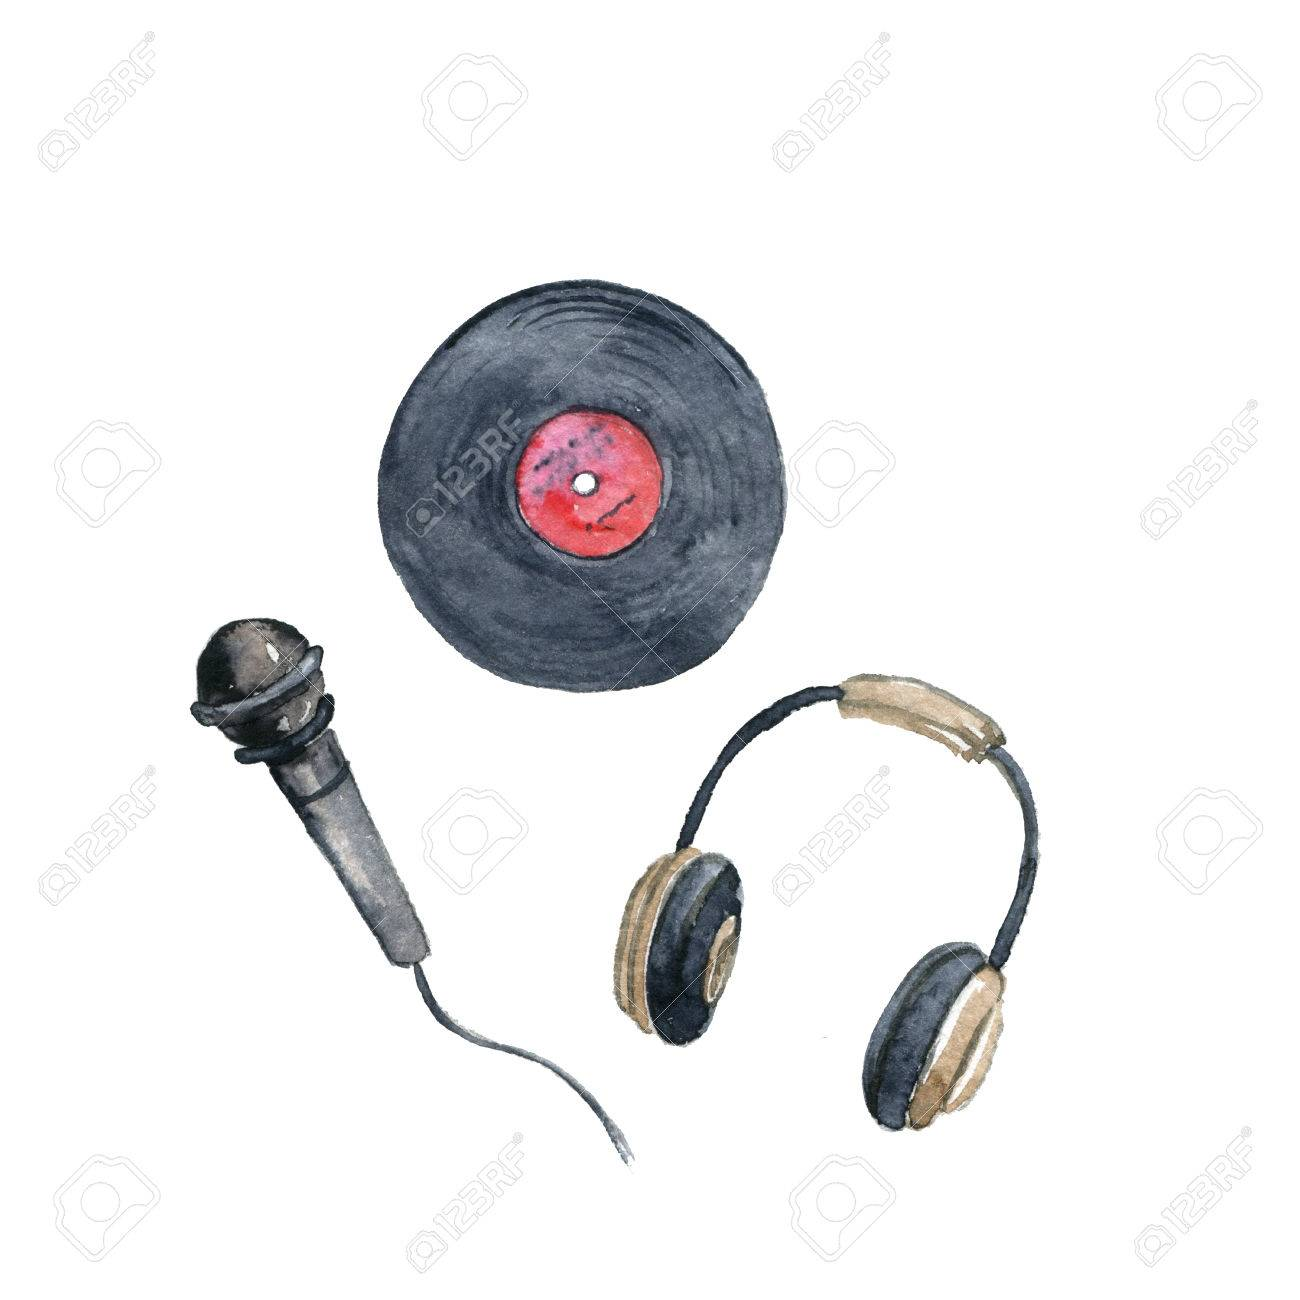 1300x1300 Watercolor Drawing Vinyl Record, Microphone And Headphones Stock